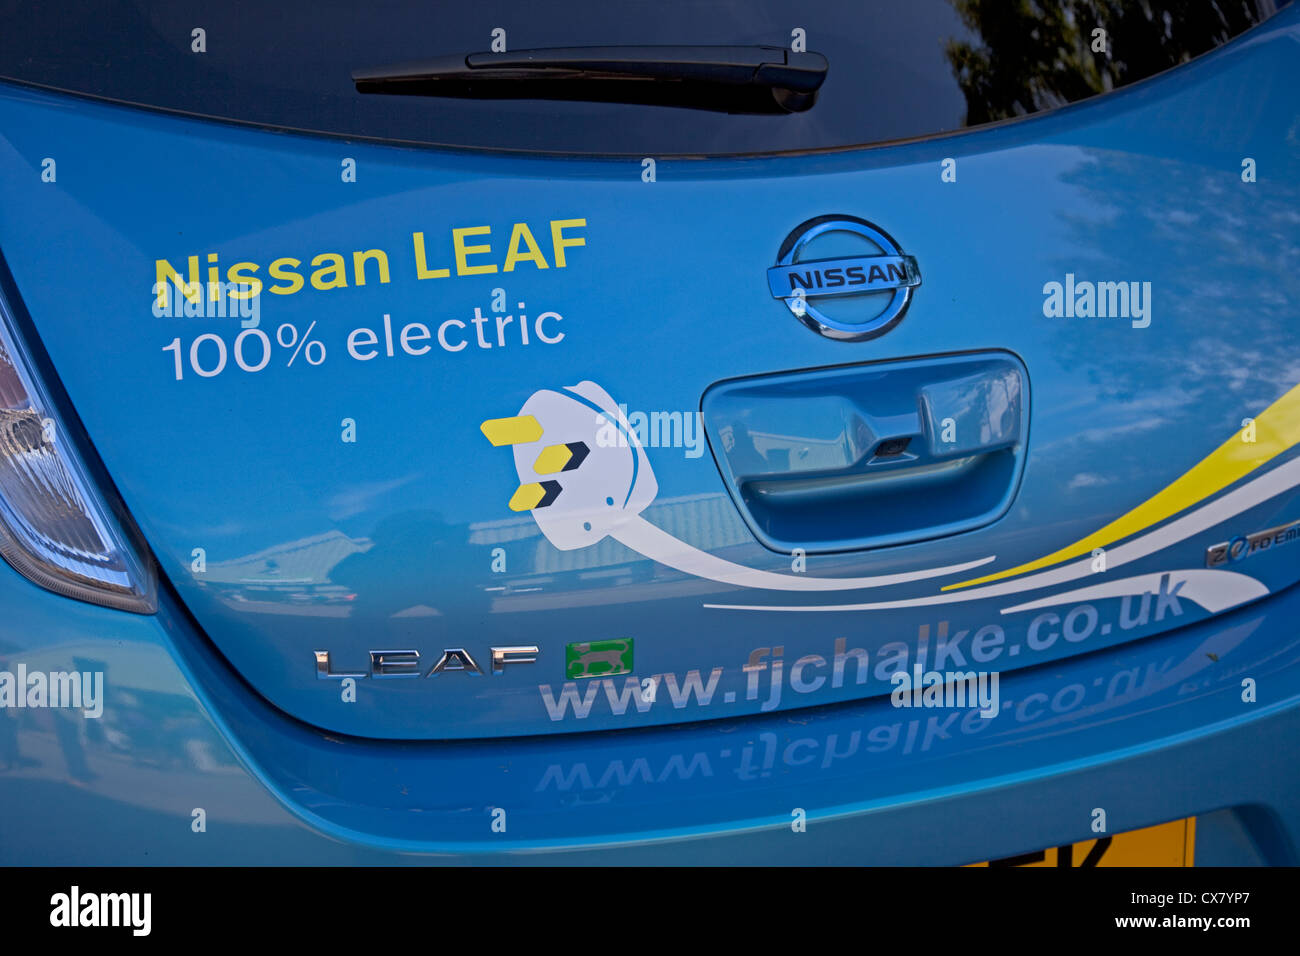 nissan leaf null emissionen ladestation f r elektroautos. Black Bedroom Furniture Sets. Home Design Ideas